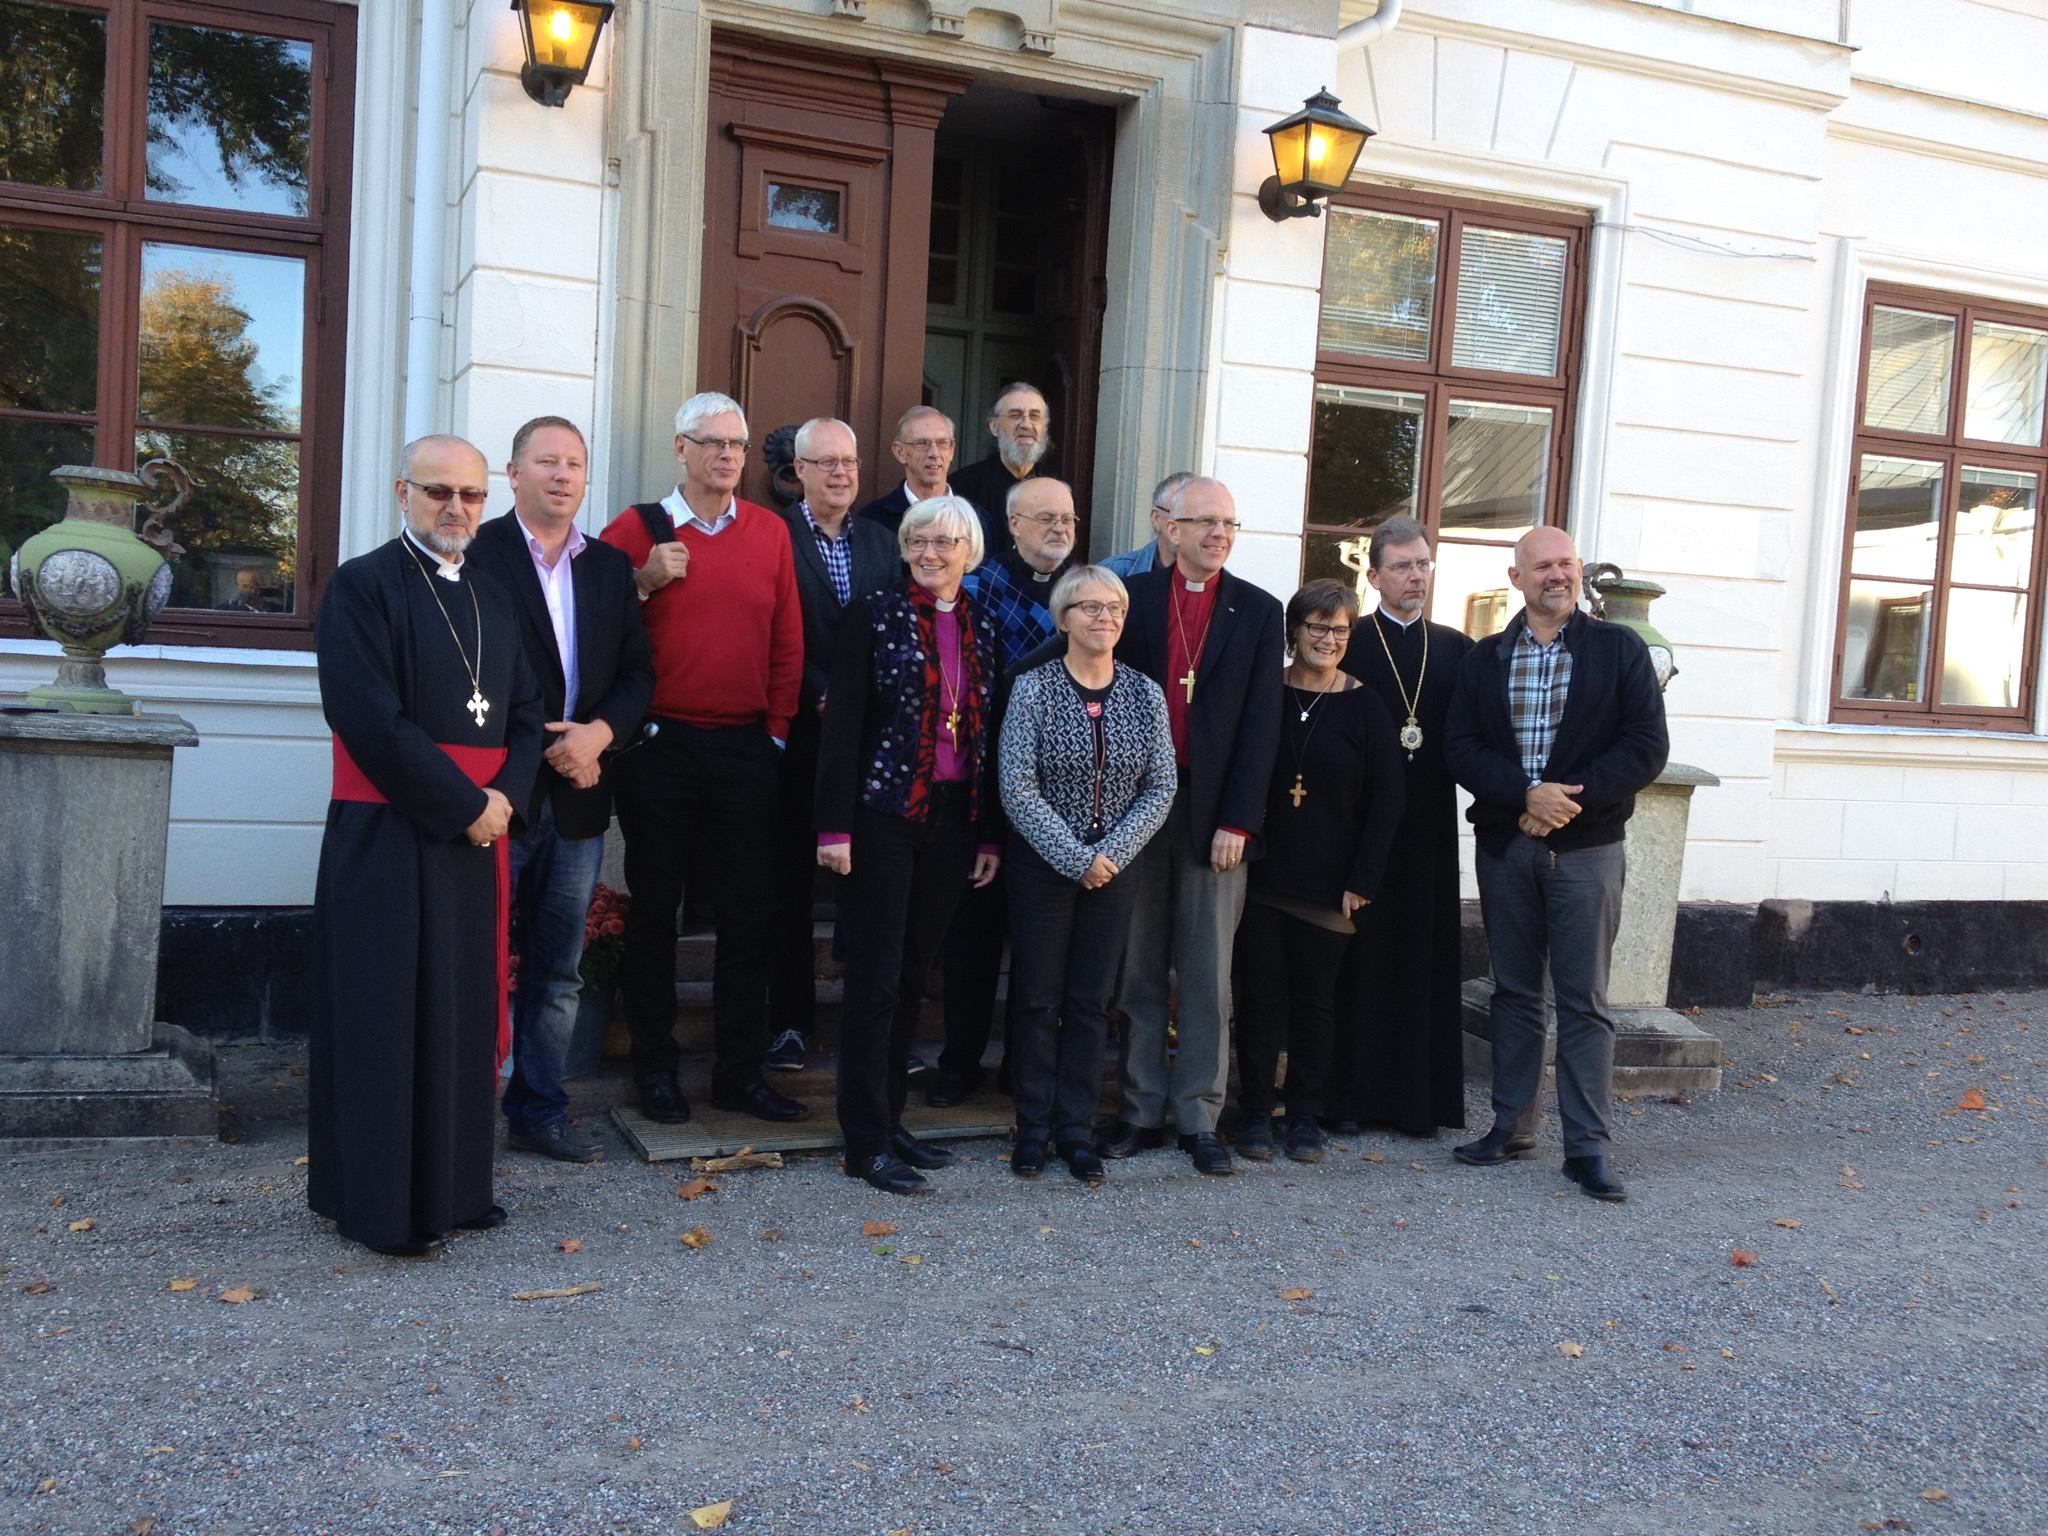 Bishop of Europe Attends Swedish Heads of Churches Meeting